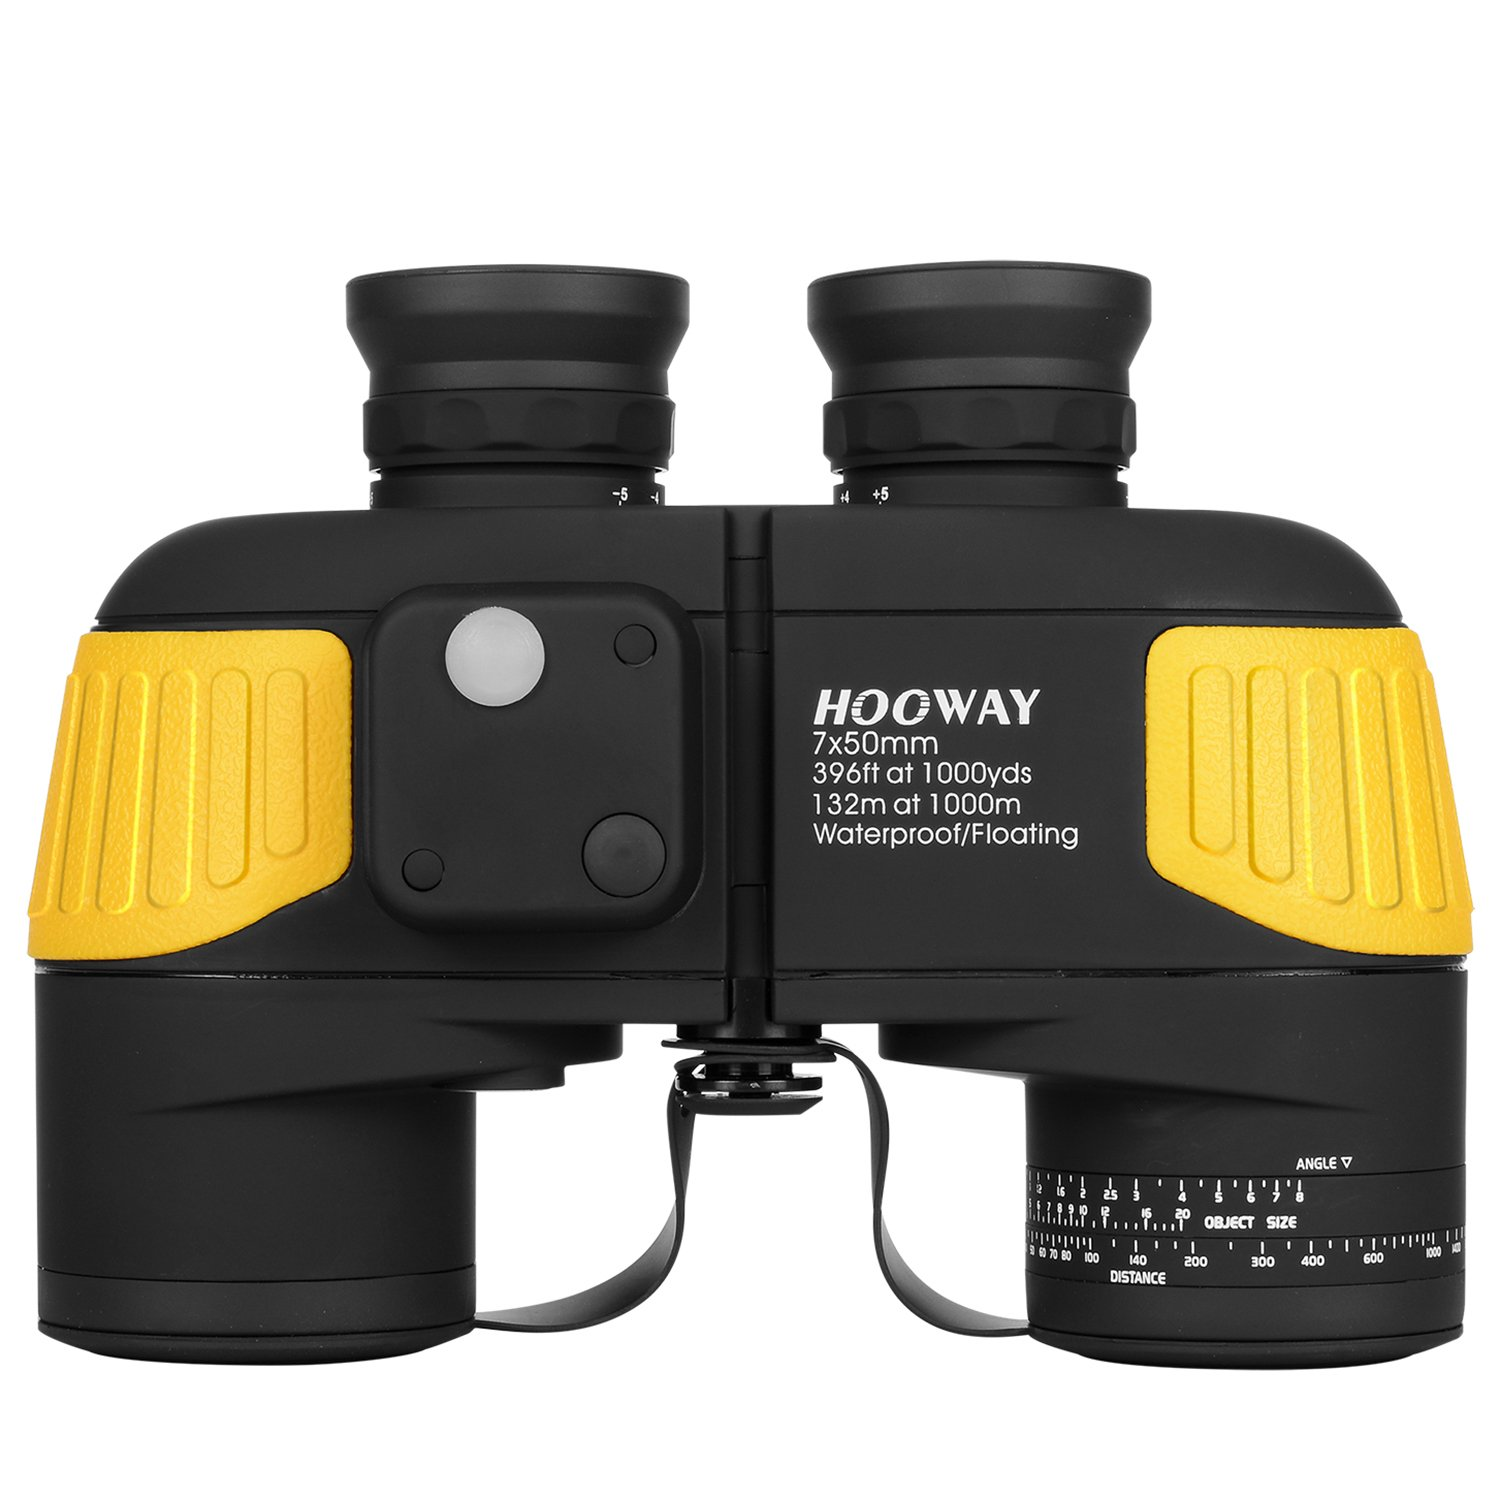 Hooway 7x50 Waterproof Fogproof Military Marine Binoculars w/ Internal Rangefinder & Compass for Navigation,Boating,Fishing,Water Sports,Hunting and More by HOOWAY